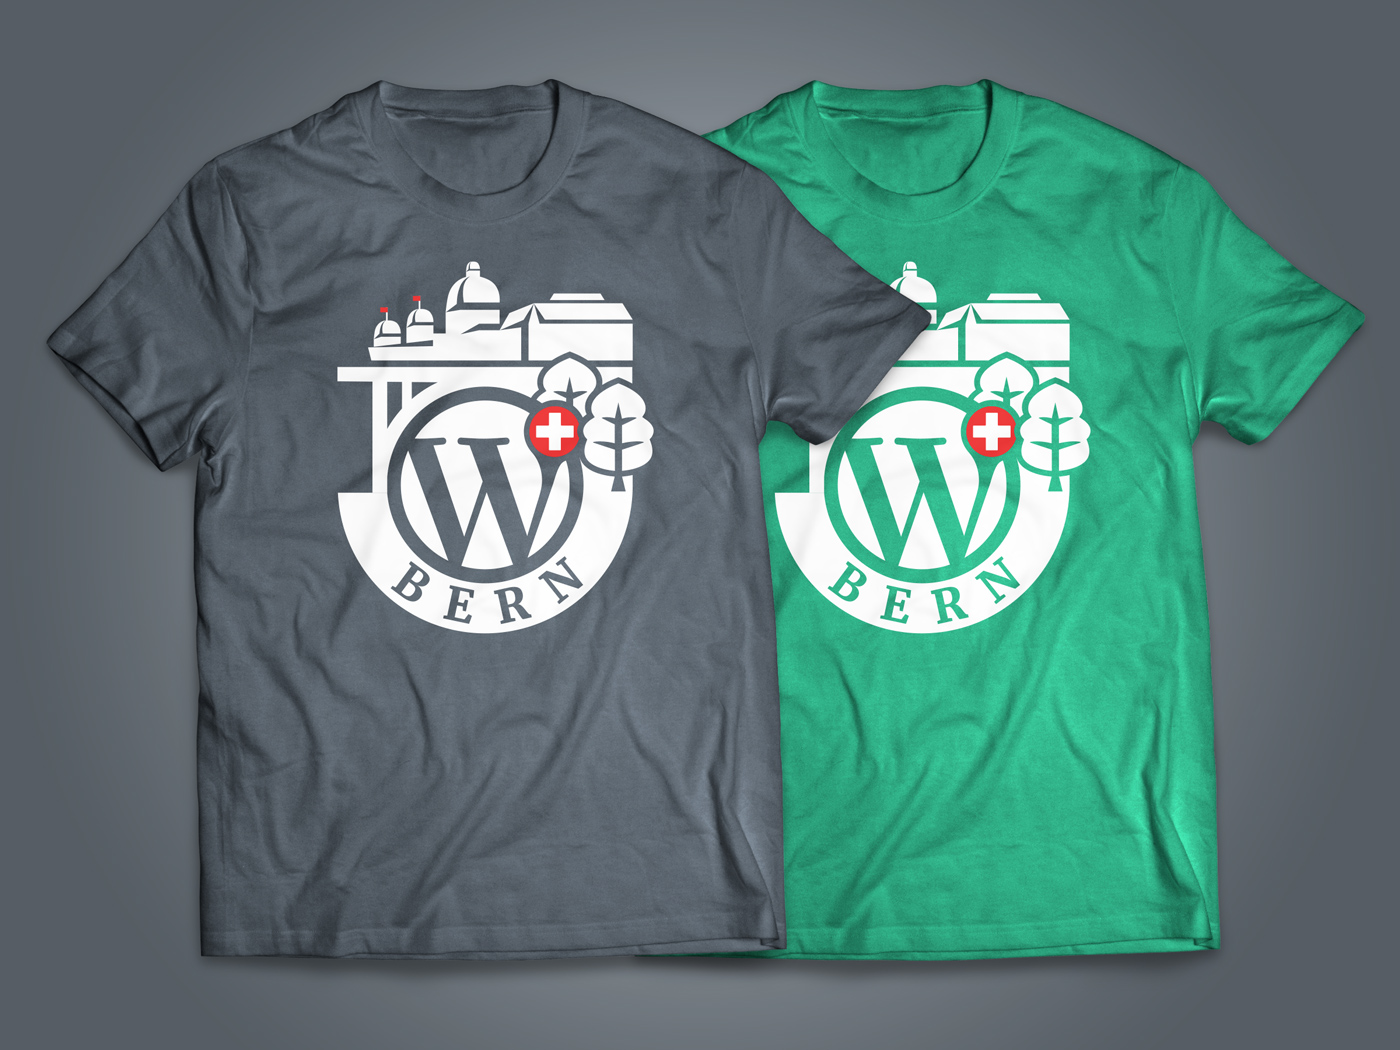 A grey and a green T-shirt with the WordCamp Bern logo on it